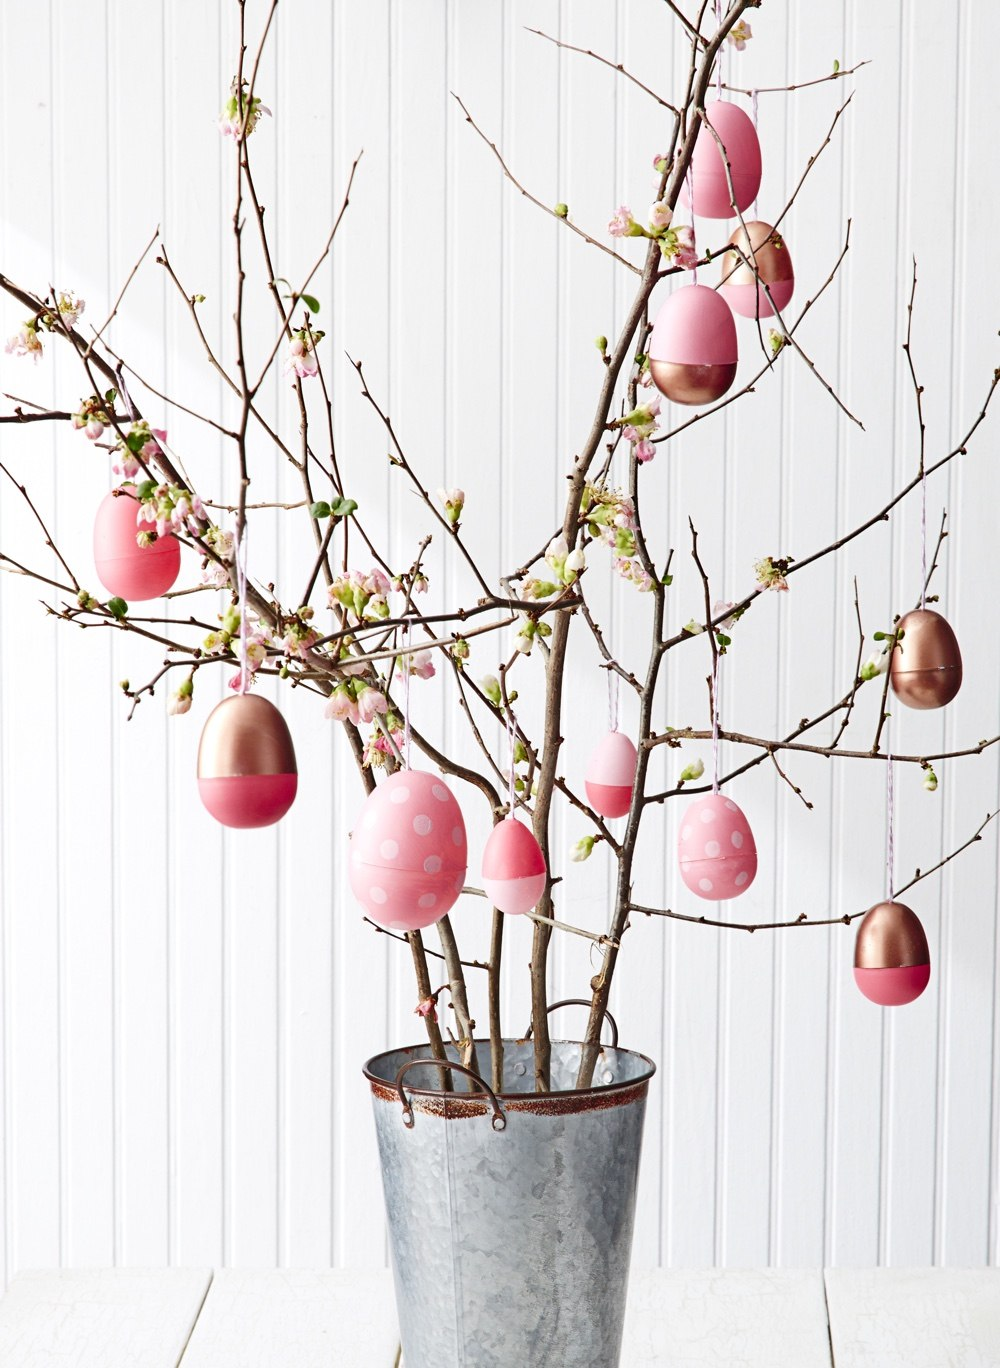 20 Amazing Easter Decoration Ideas You Can Make Yourself: images for easter decorations